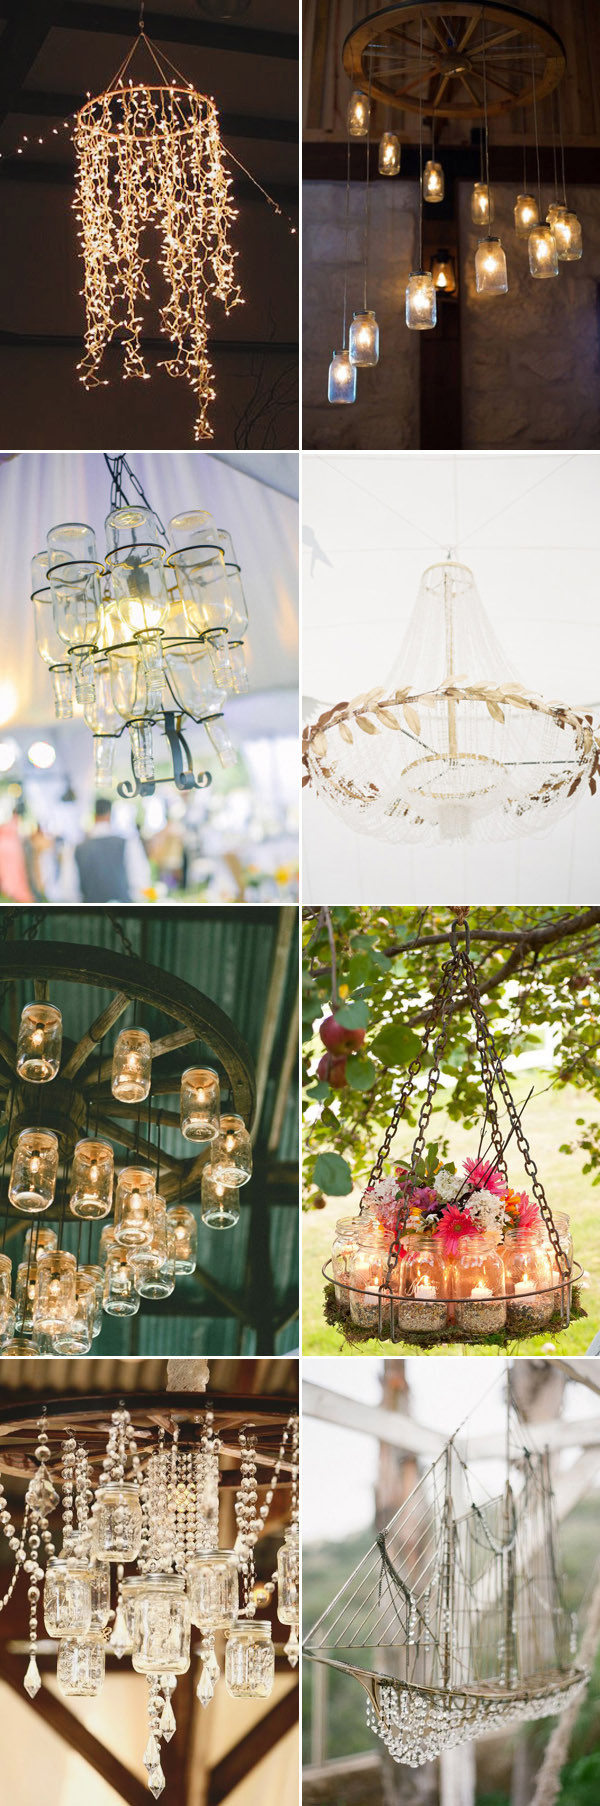 Best ideas about DIY Wedding Decor Ideas . Save or Pin Wedding Decorations 40 Romantic Ideas To Use Chandeliers Now.